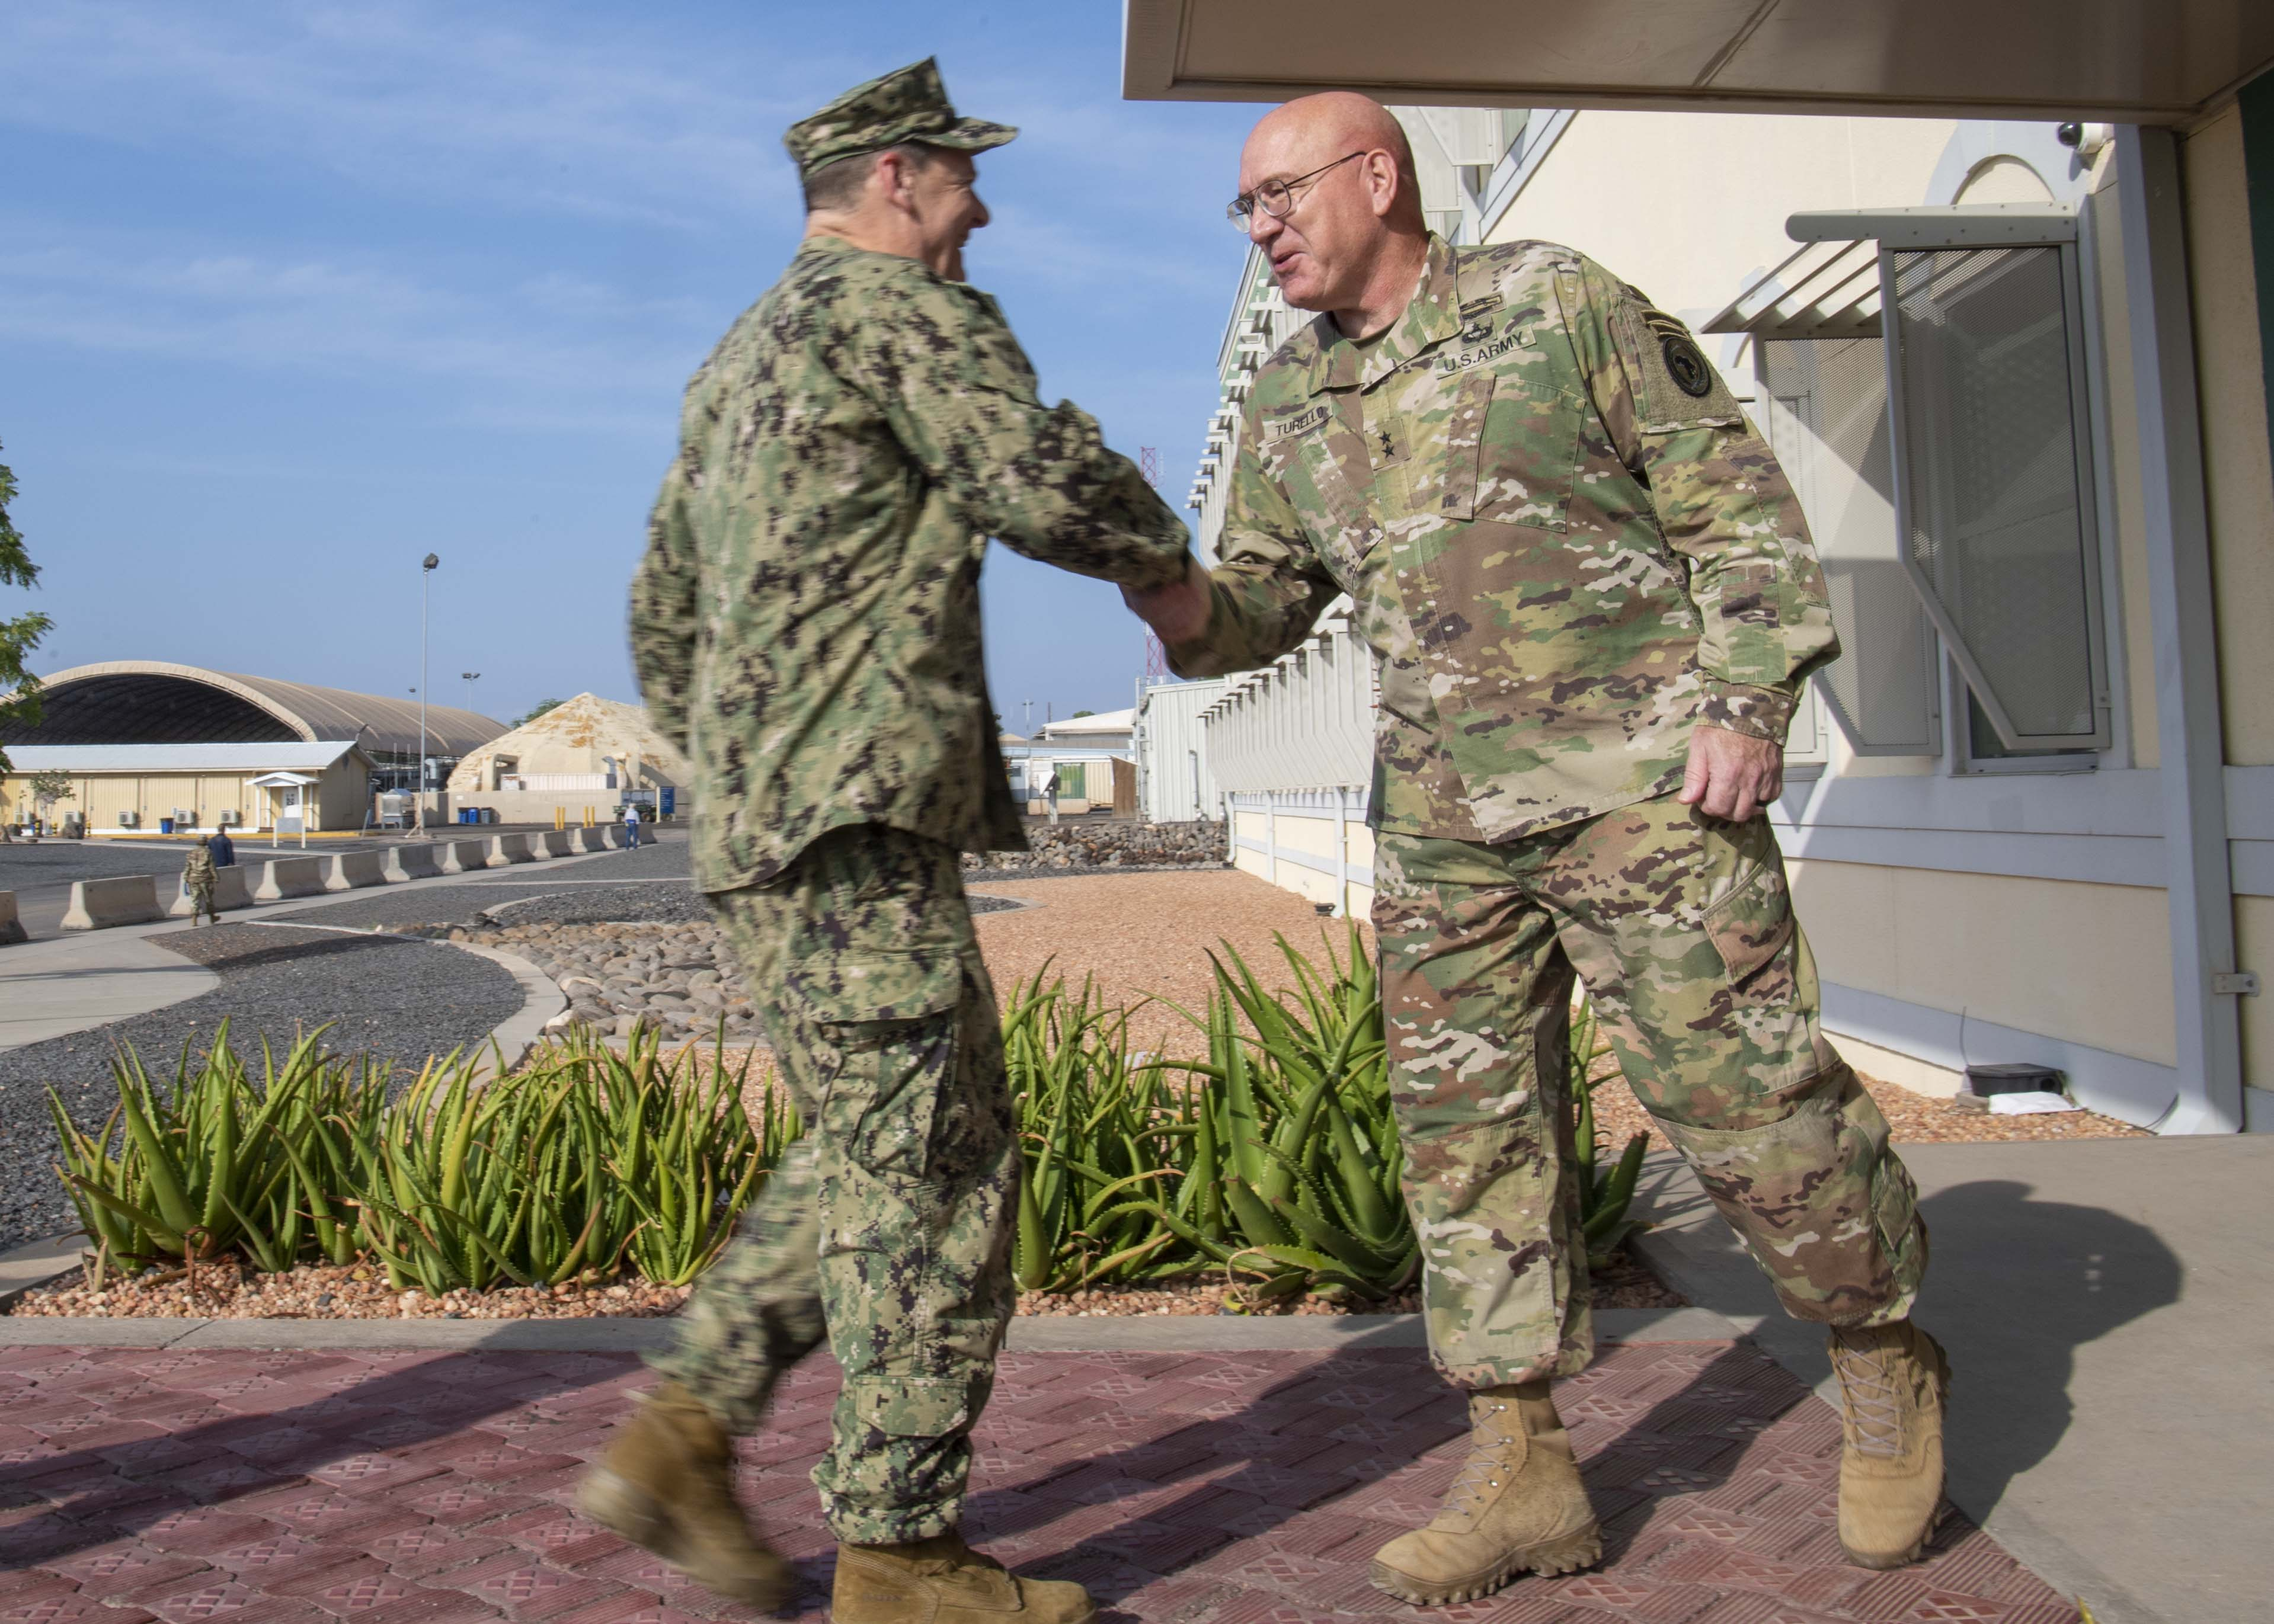 U.S. Army Maj. Gen. Michael Turello, commanding general, Combined Joint Task Force-Horn of Africa (CJTF-HOA), (right), greets U.S. Navy Vice Adm. Luke McCollum, commander, Navy Reserve Force, chief, Navy Reserve at Camp Lemonnier, Djibouti, Nov. 29, 2019. McCollum visited Camp Lemonnier to meet with deployed Navy Reserve sailors and other service members. (U.S. Air Force photo by Staff Sgt. J.D. Strong II)